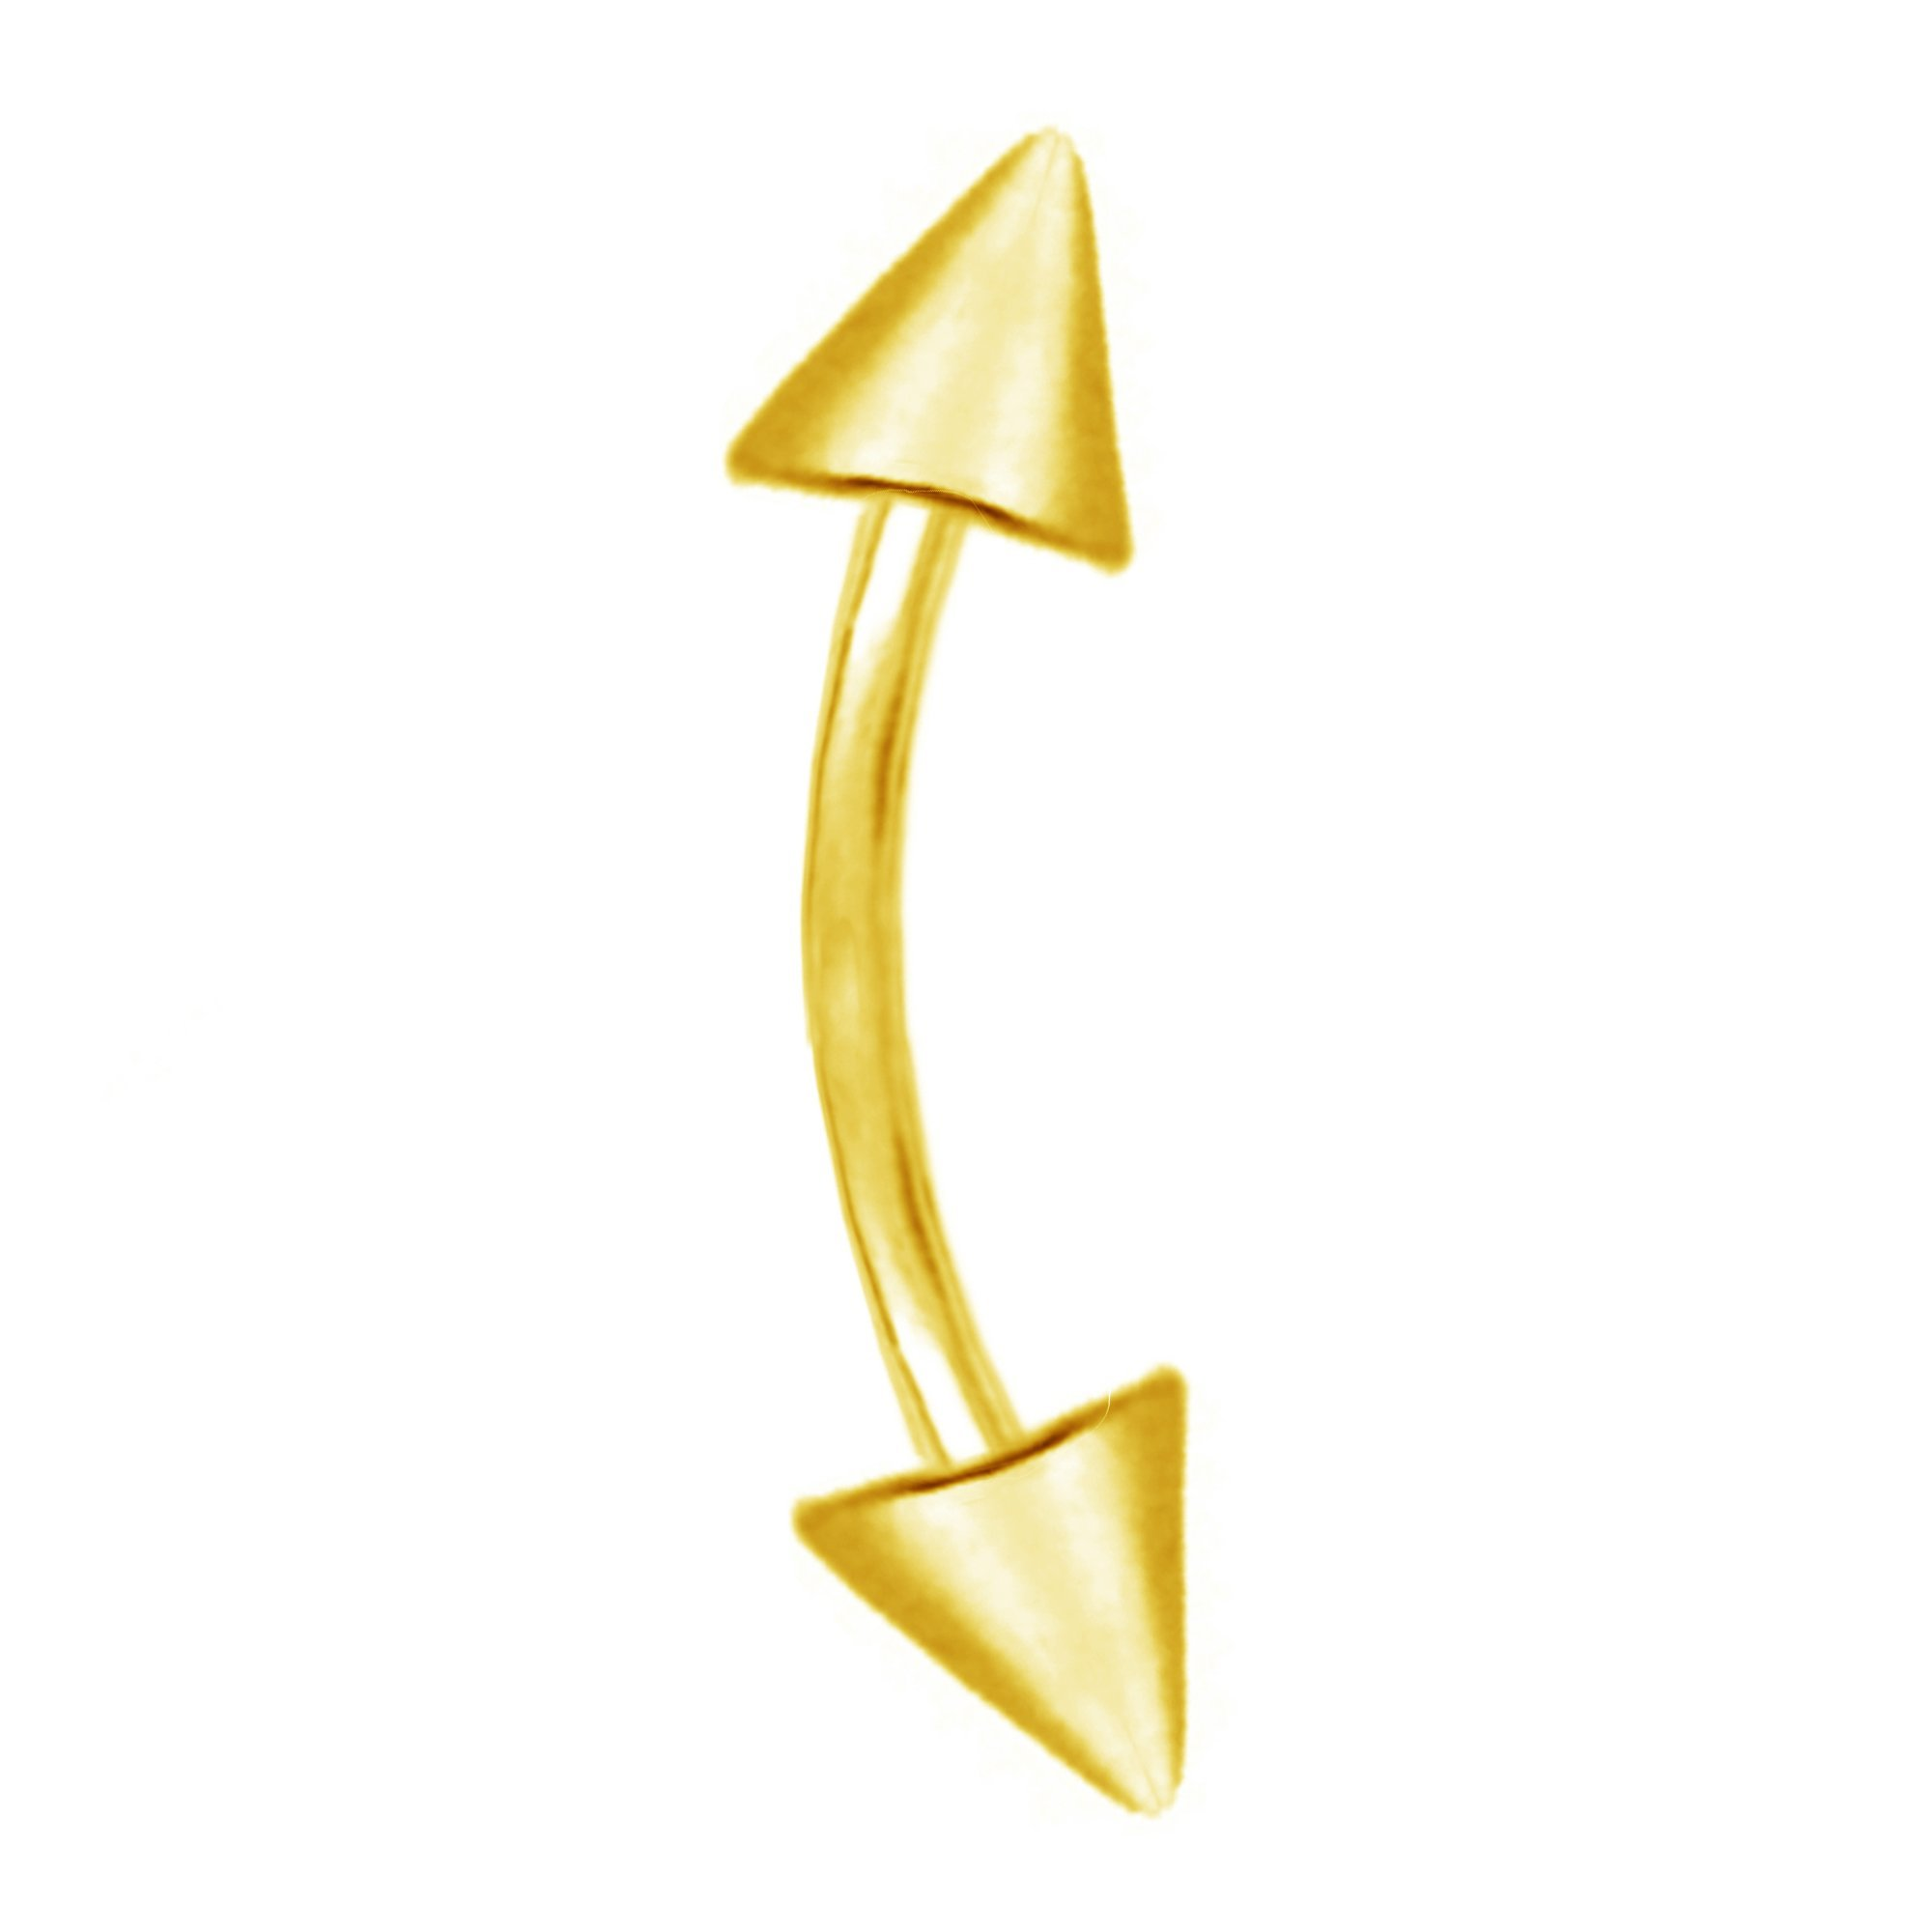 Ritastephens 14k Solid Gold Yellow Cone Eyebrow Ring Body Jewelry by Ritastephens